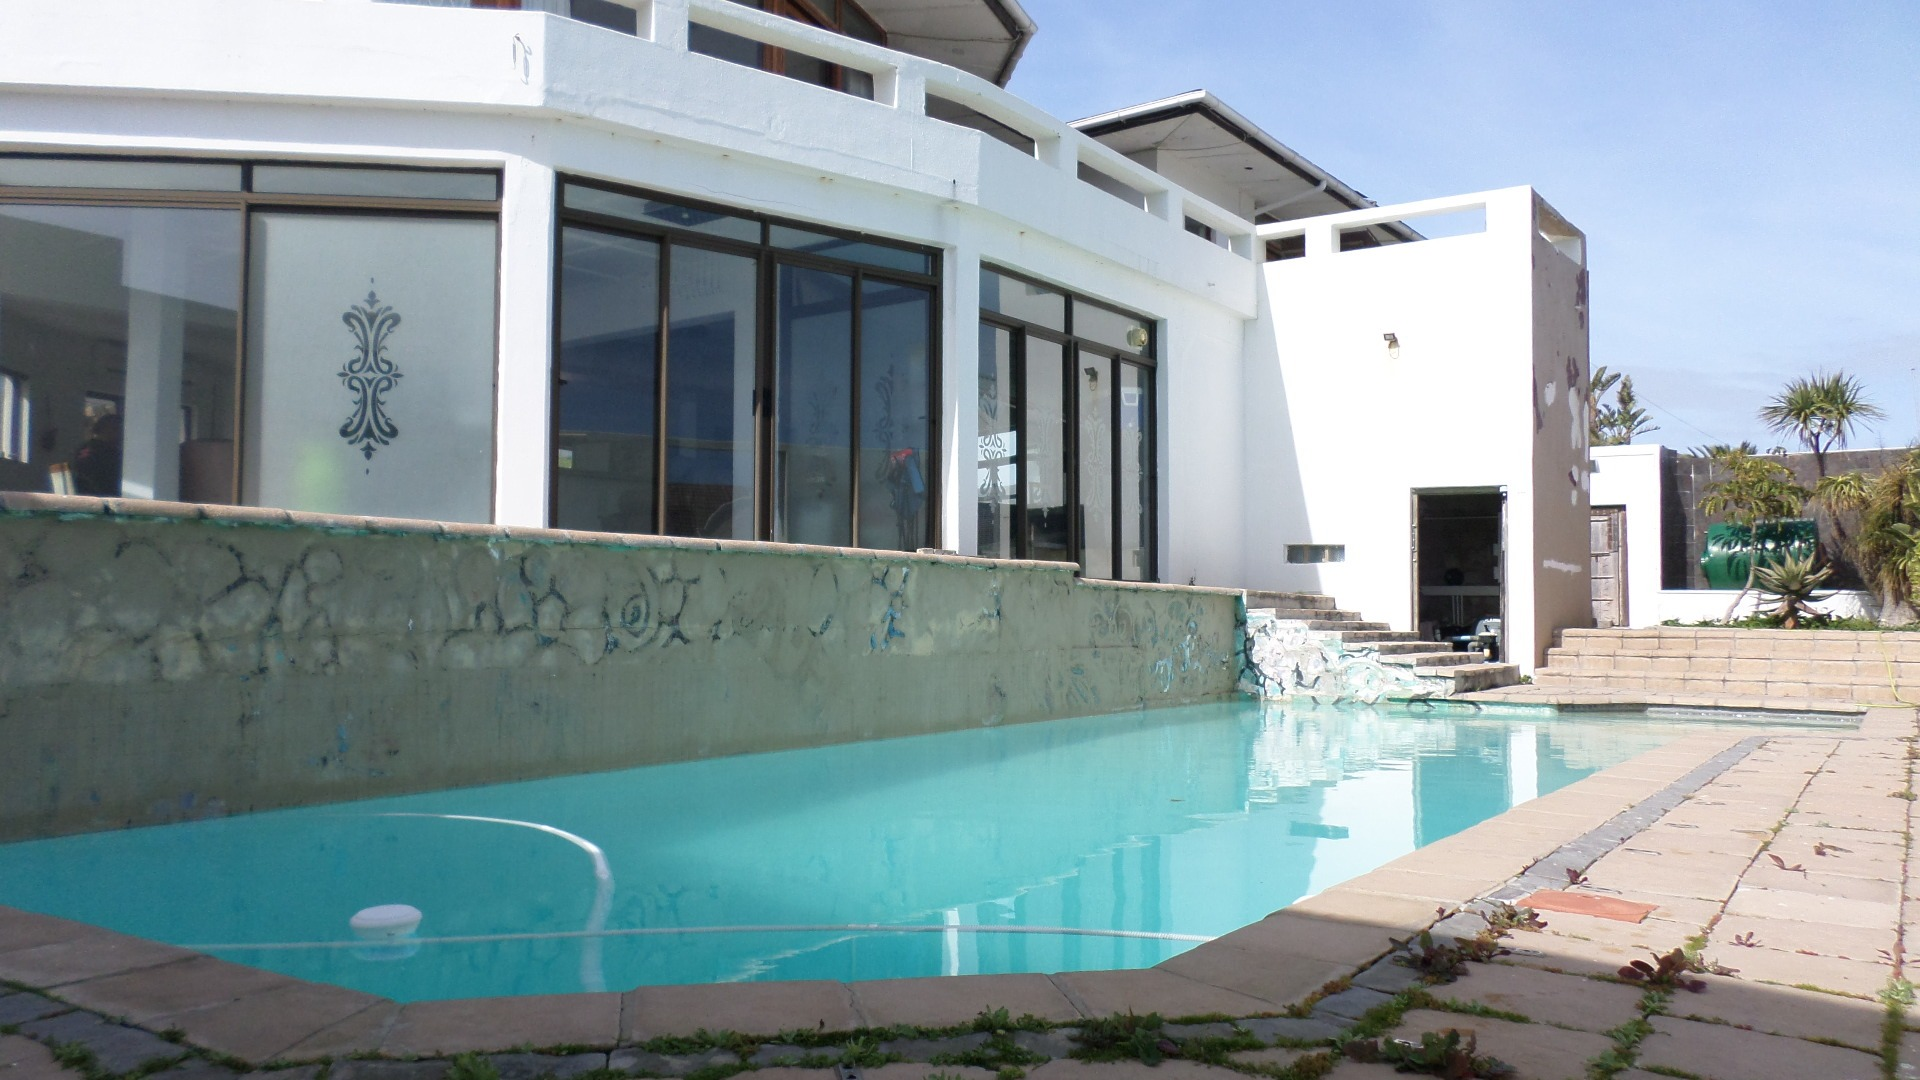 12 Bedroom House For Sale in Bloubergstrand